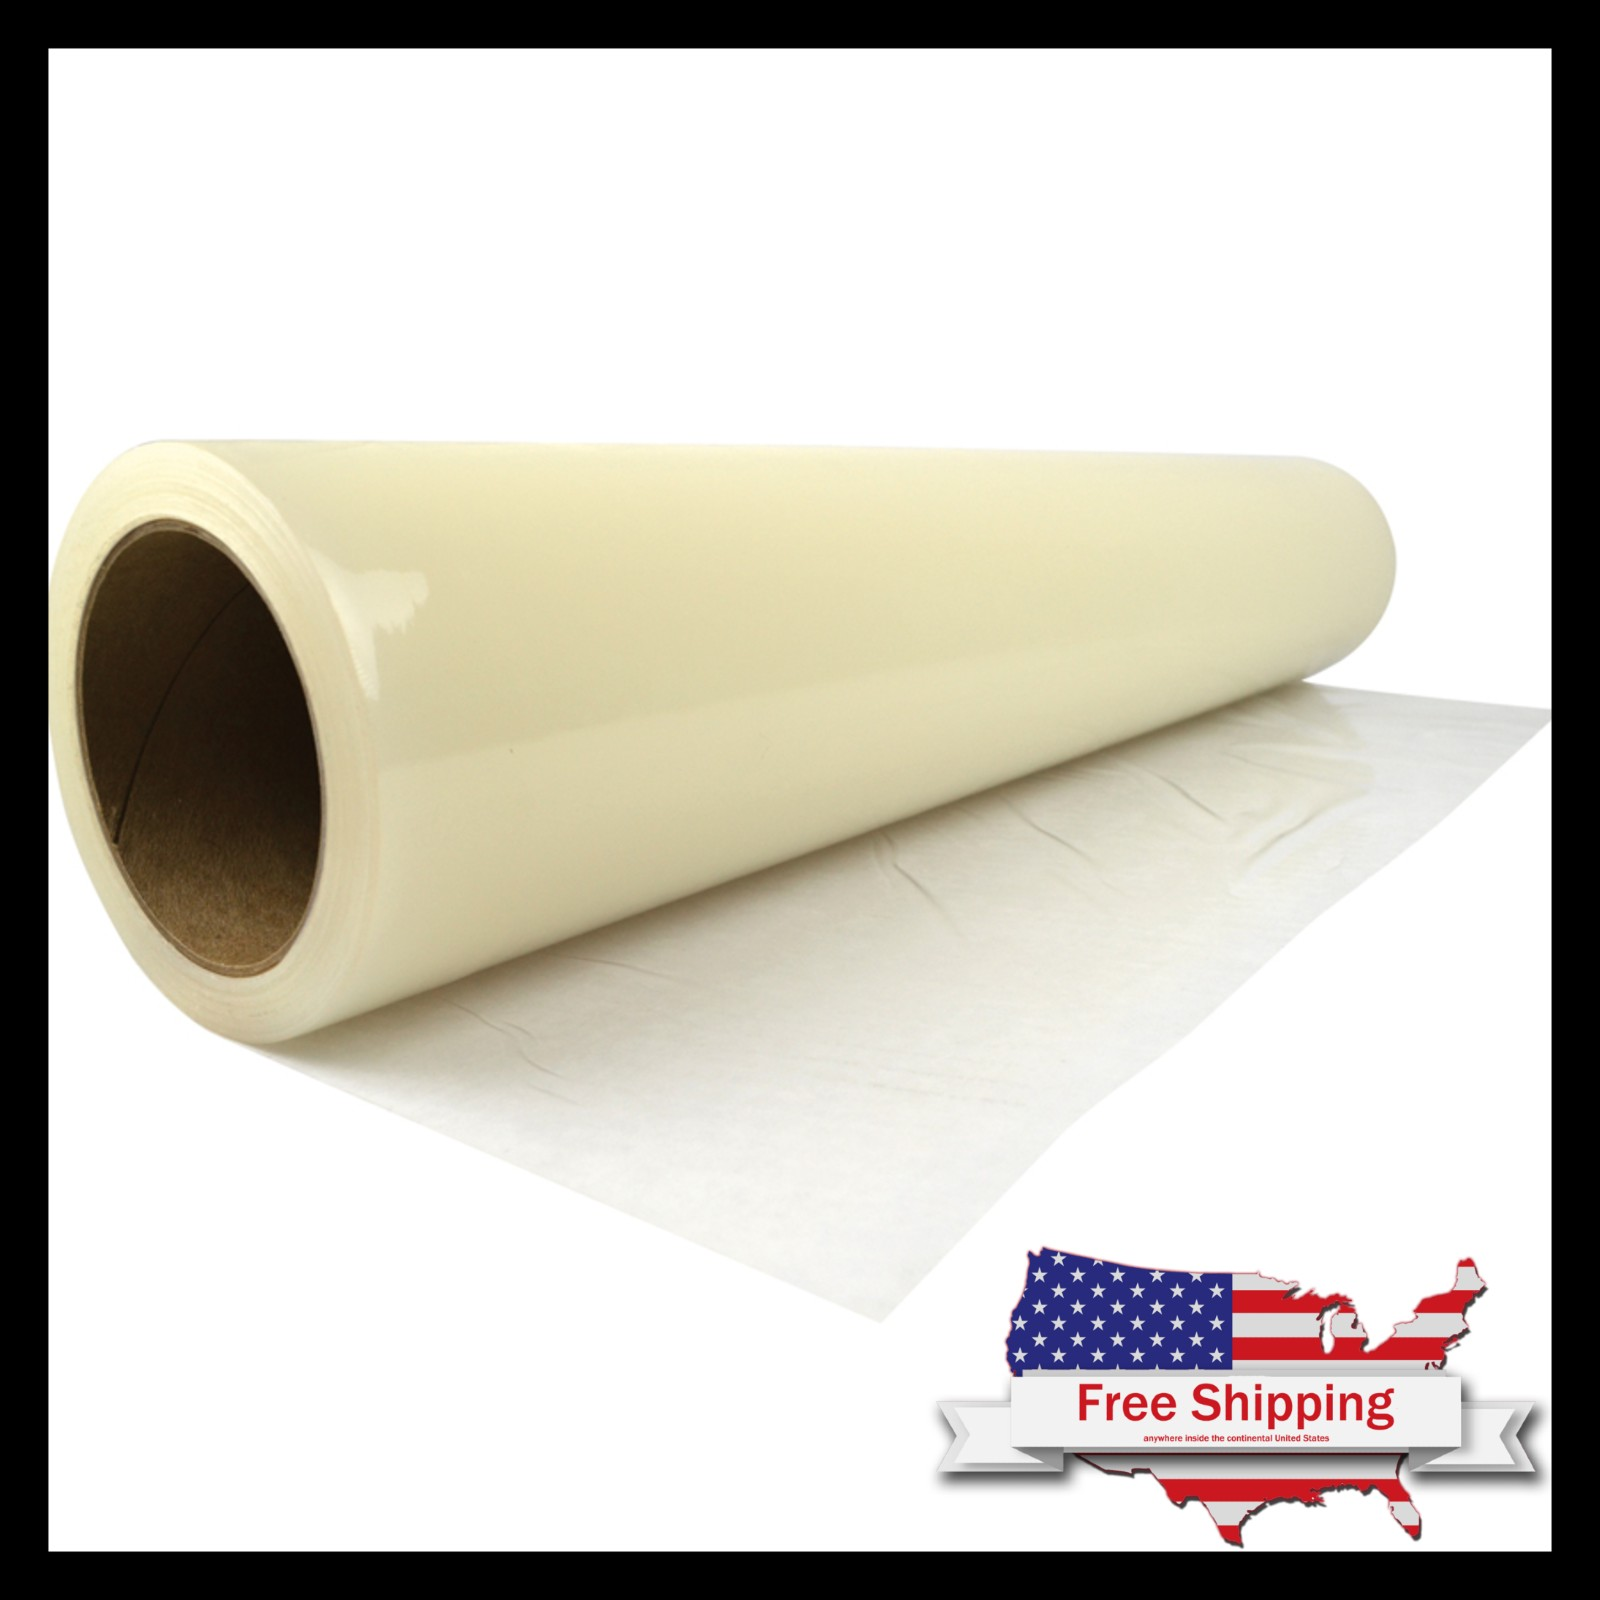 24 inch by 200 feet Great for Protect iPackBoxes Carpet Protection Clear